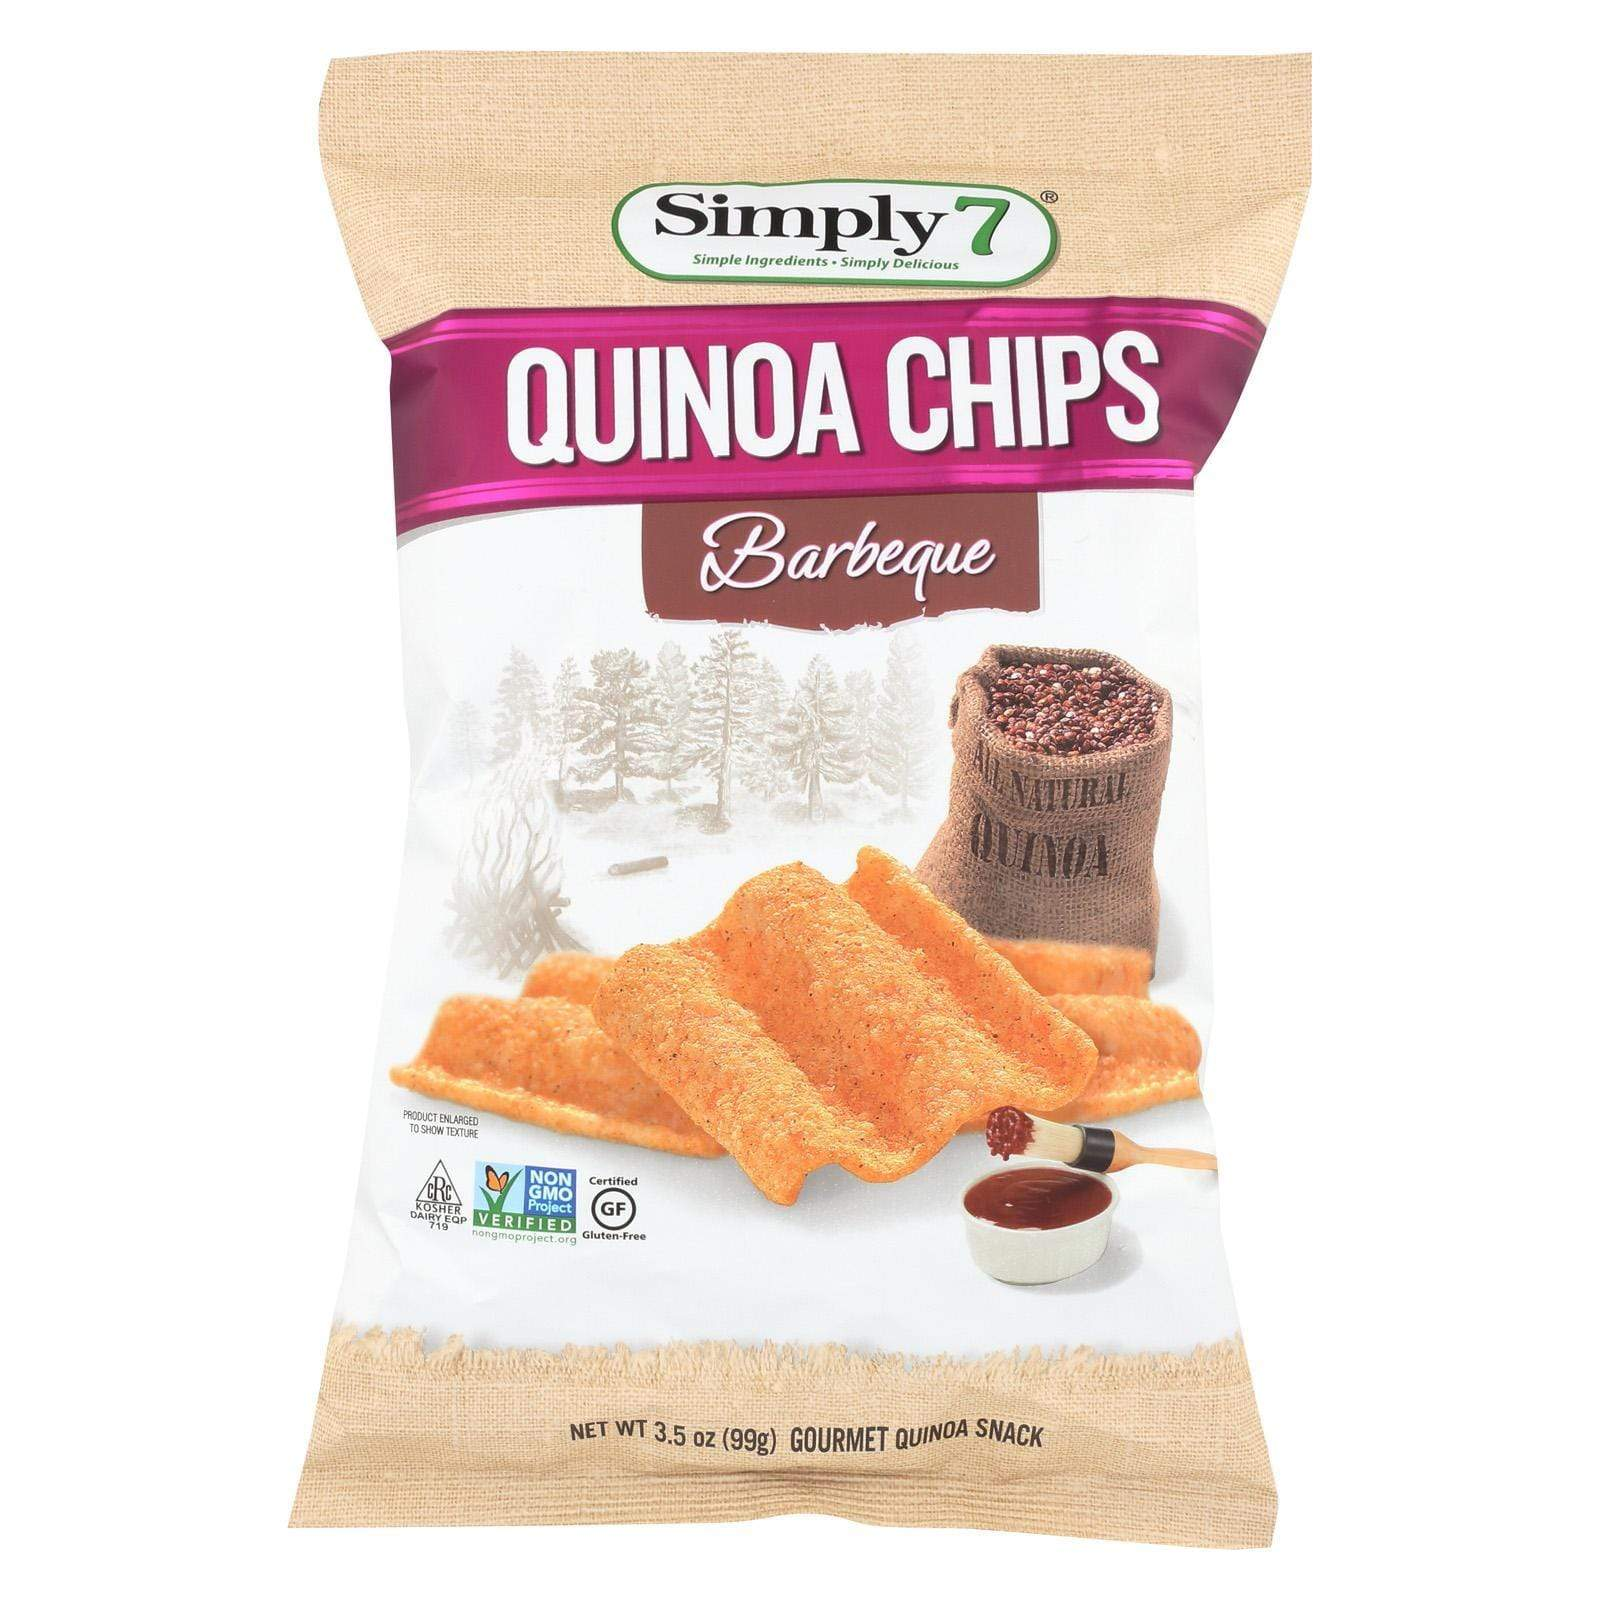 Simply7 Chips, Pretzels & Popcorn Simply 7 Quinoa Chips - Barbecue - Case Of 12 - 3.5 Oz.